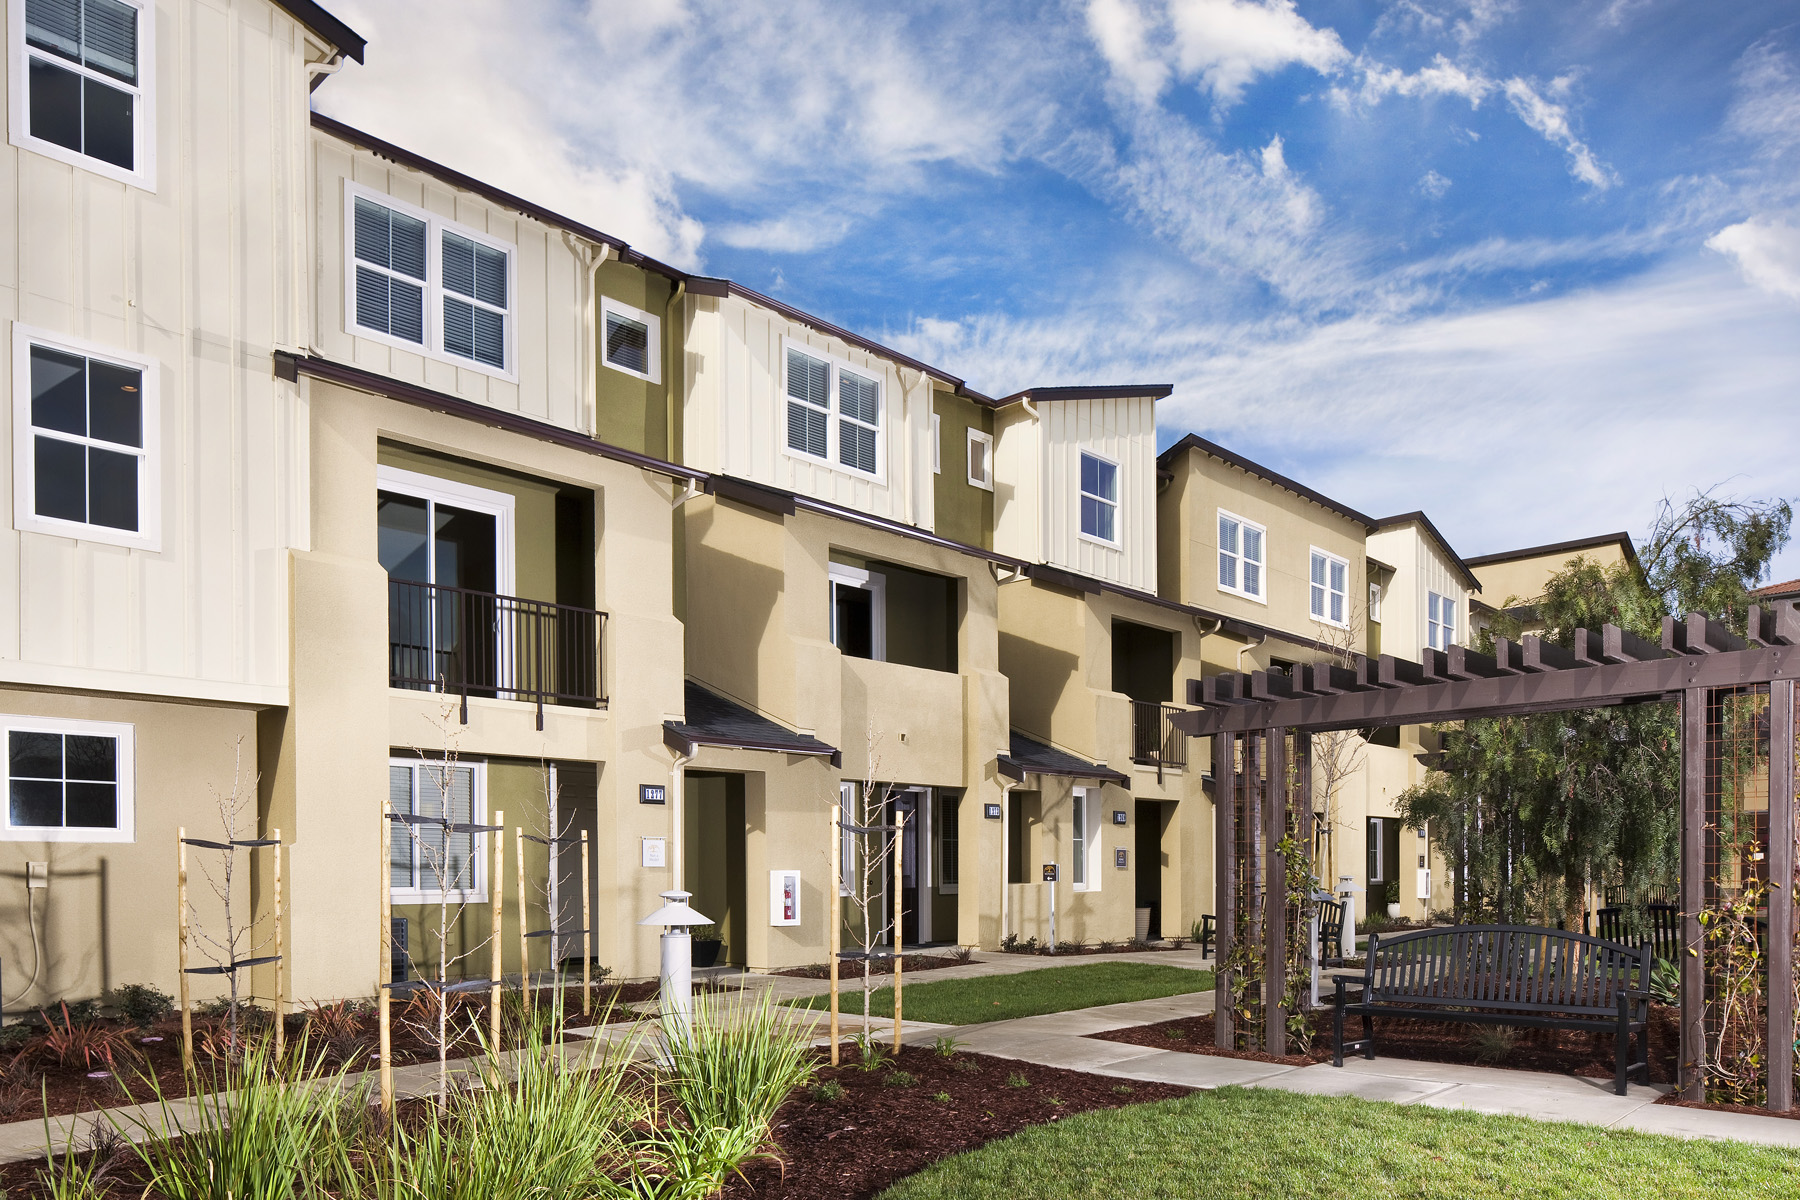 milpitas new homes, new milpitas homes, homes for sale milpitas